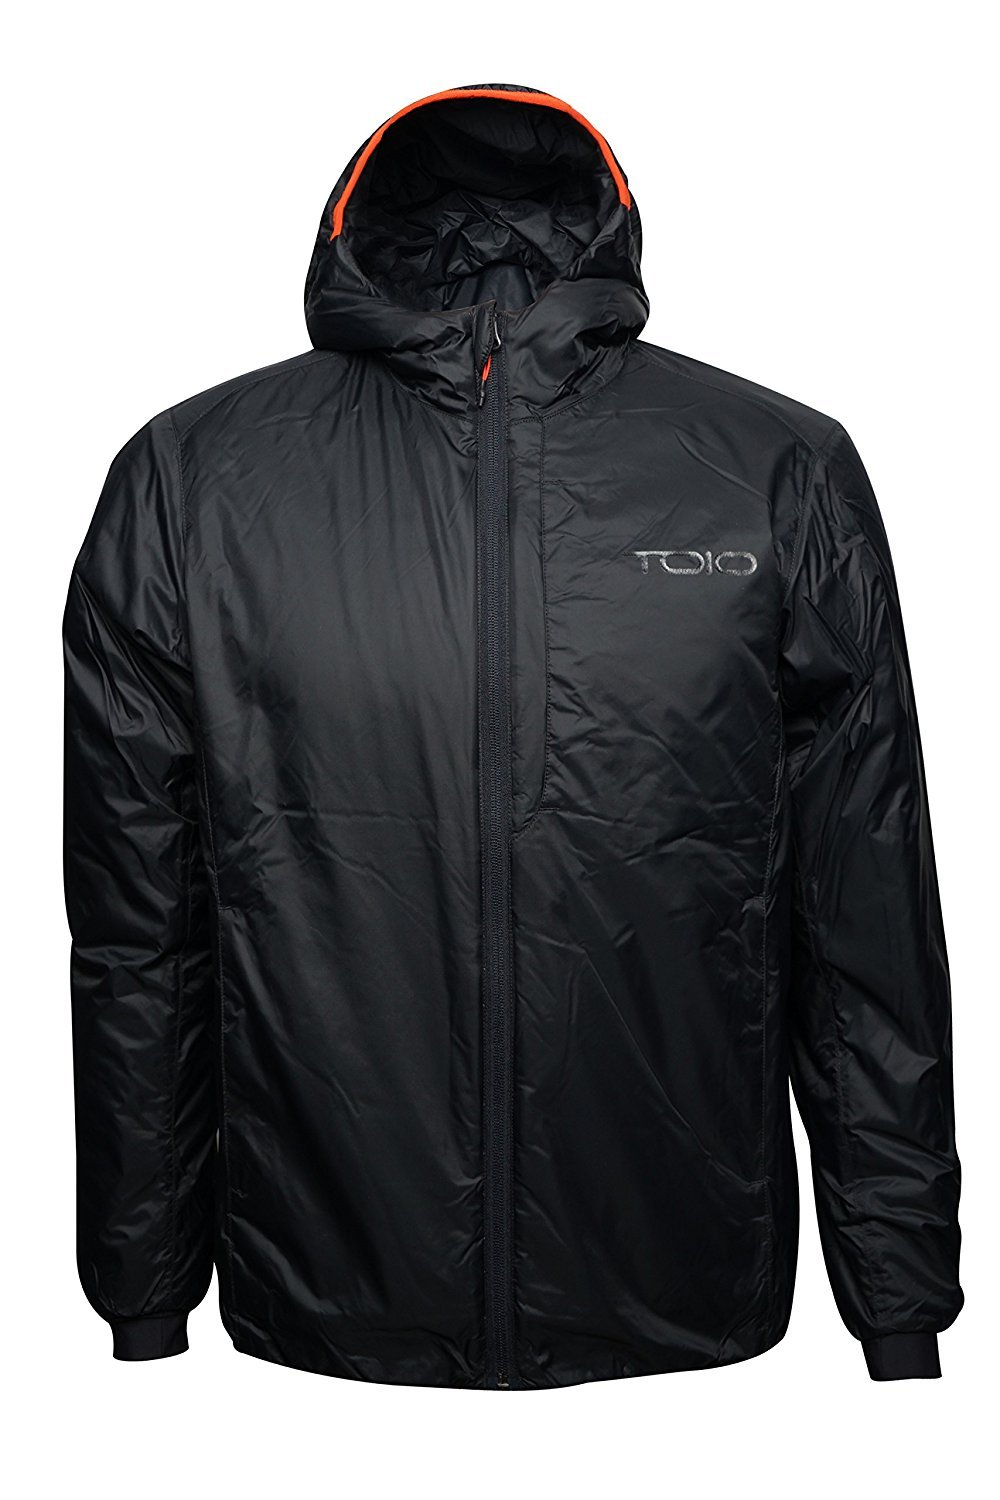 TOIO TOIO TOIO - Boom Hooded Jacket Water Repellent, Superlight Jacket with Primaloft Padding and Adjustable Hood Front Chest Pocket and Lower Comfortable Pockets B077PL8WVJ Jacken Geschäft 973df1